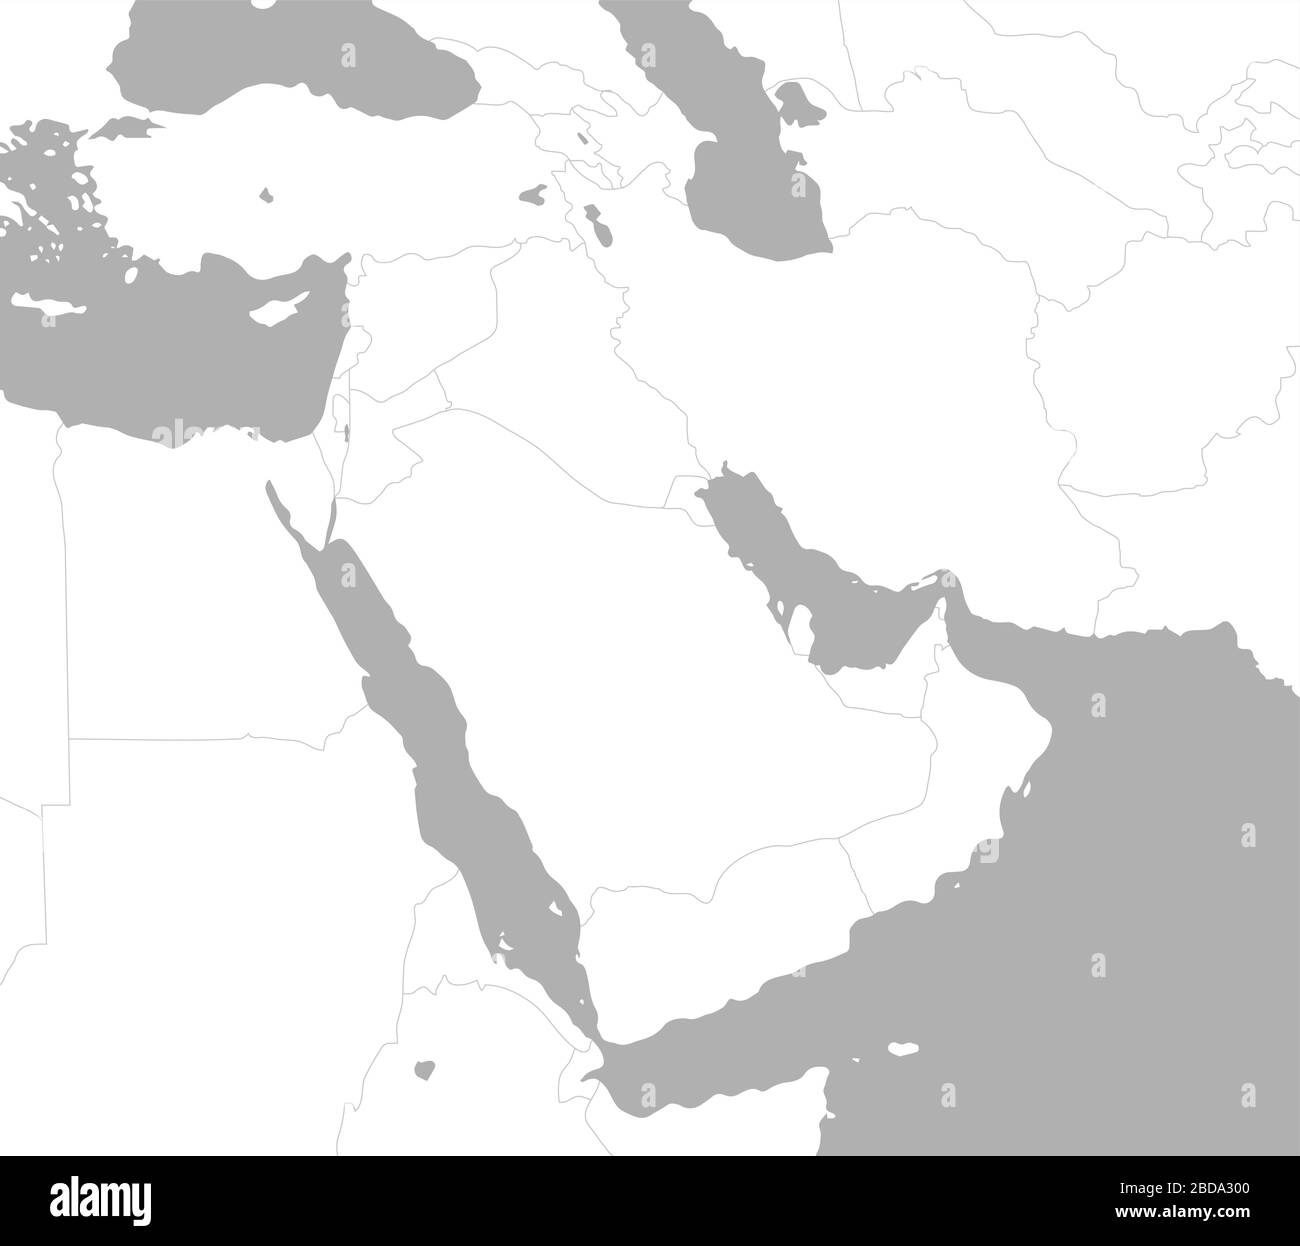 Image of: Middle East Arabian Countries Map No Text Stock Vector Image Art Alamy